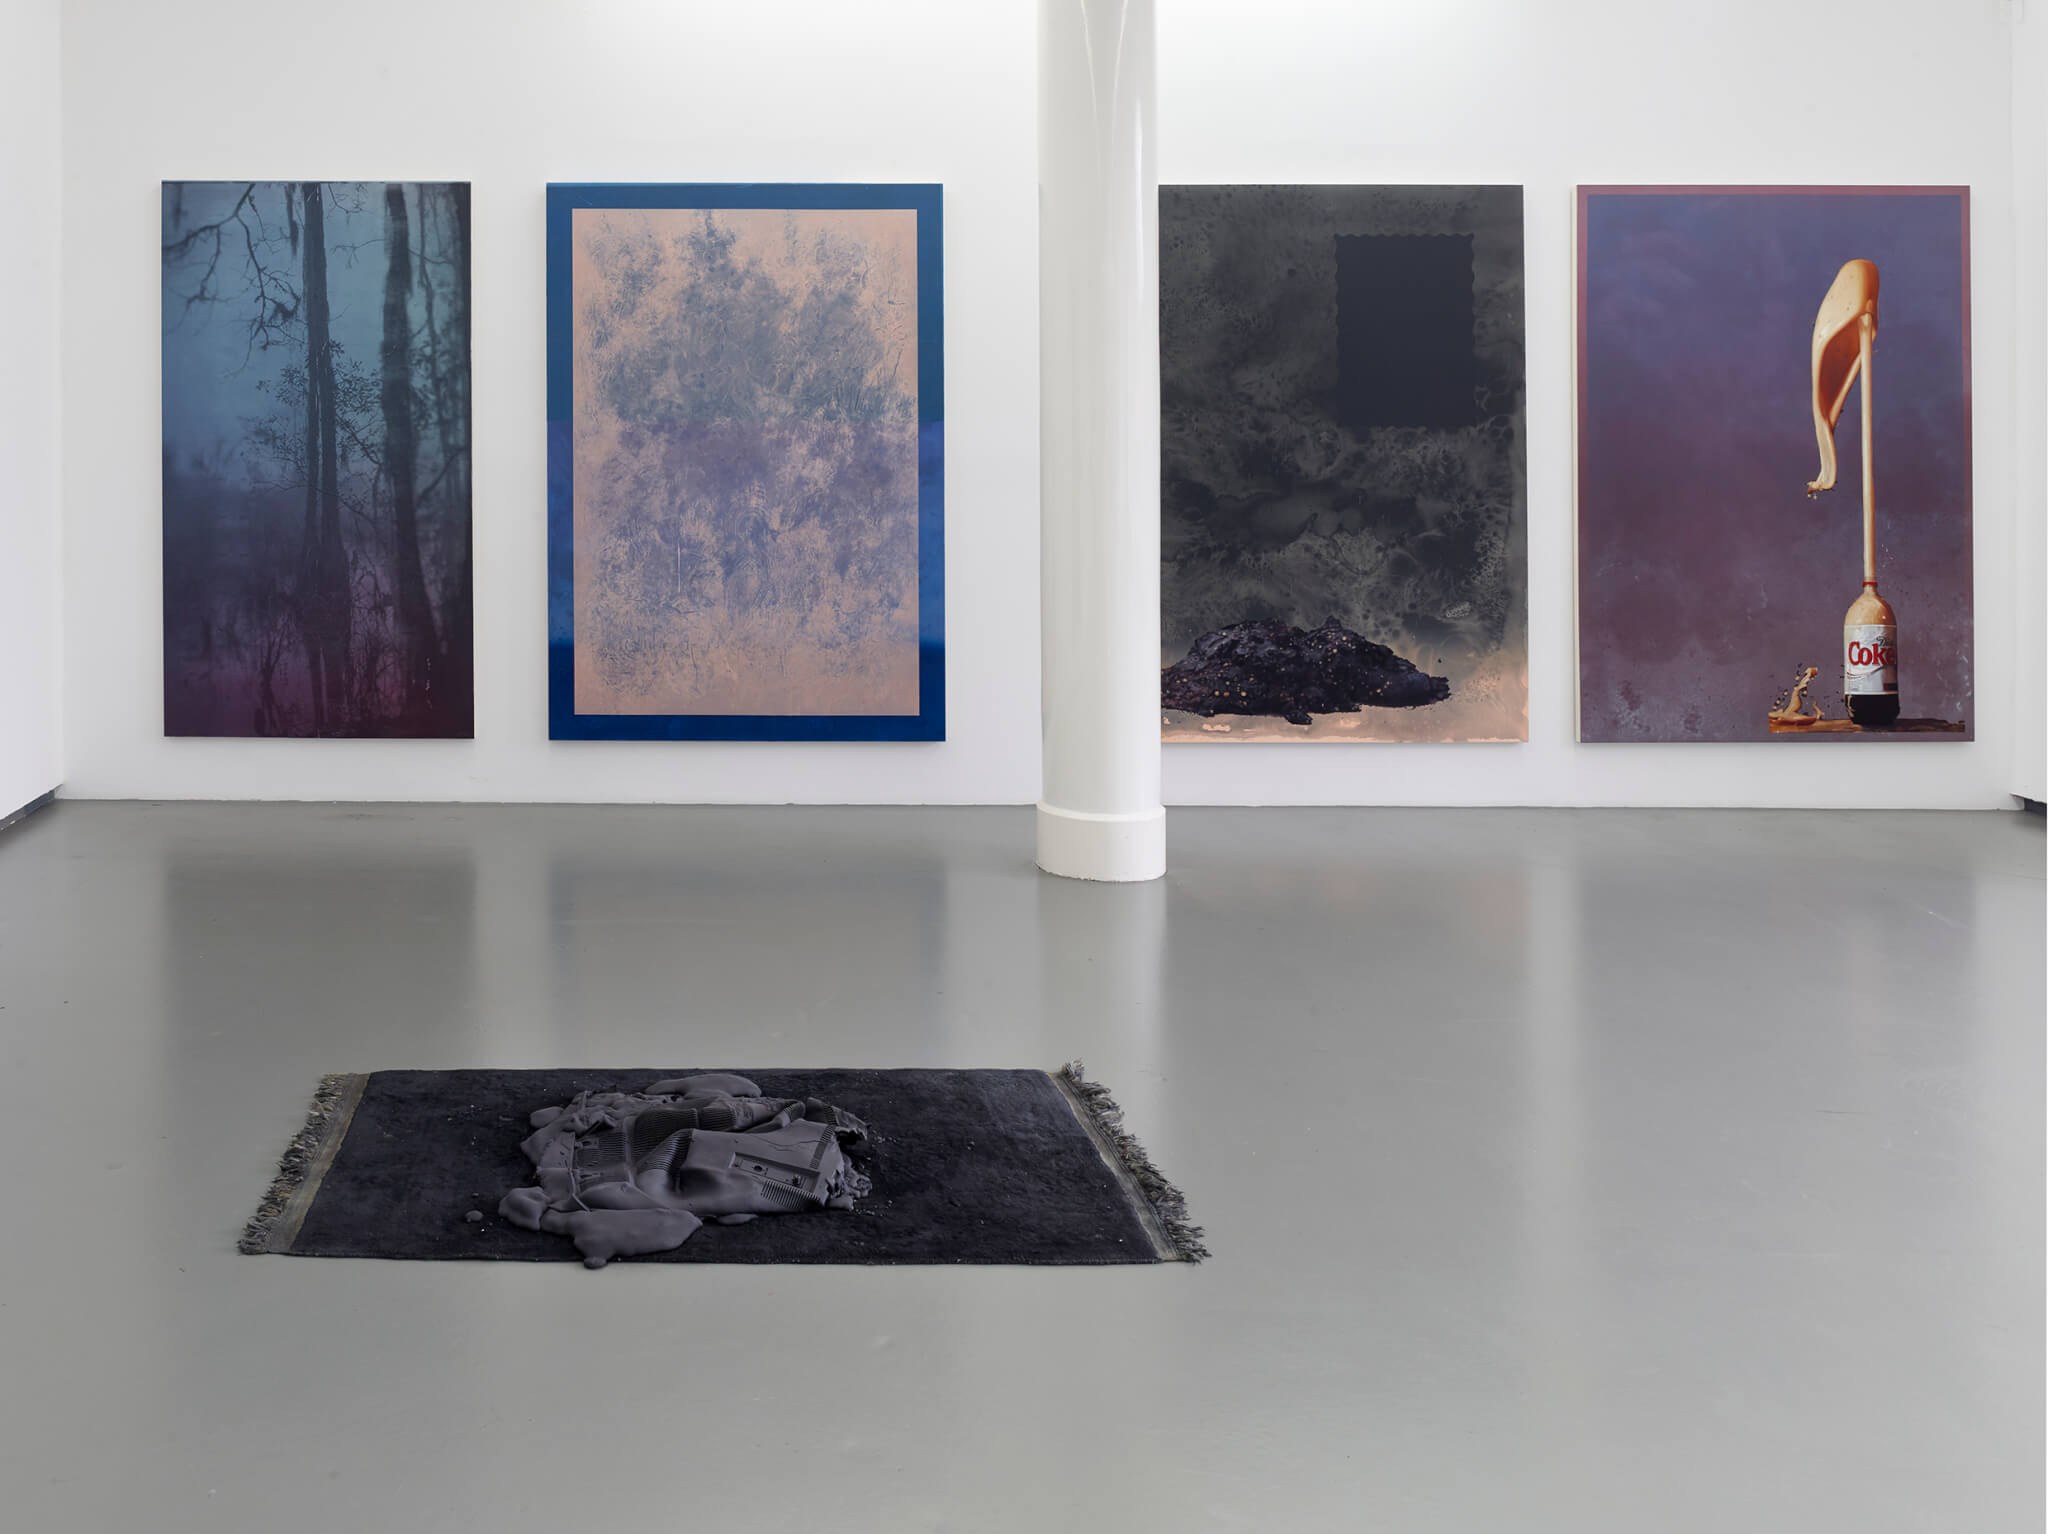 SG, Installation view 009, 2015